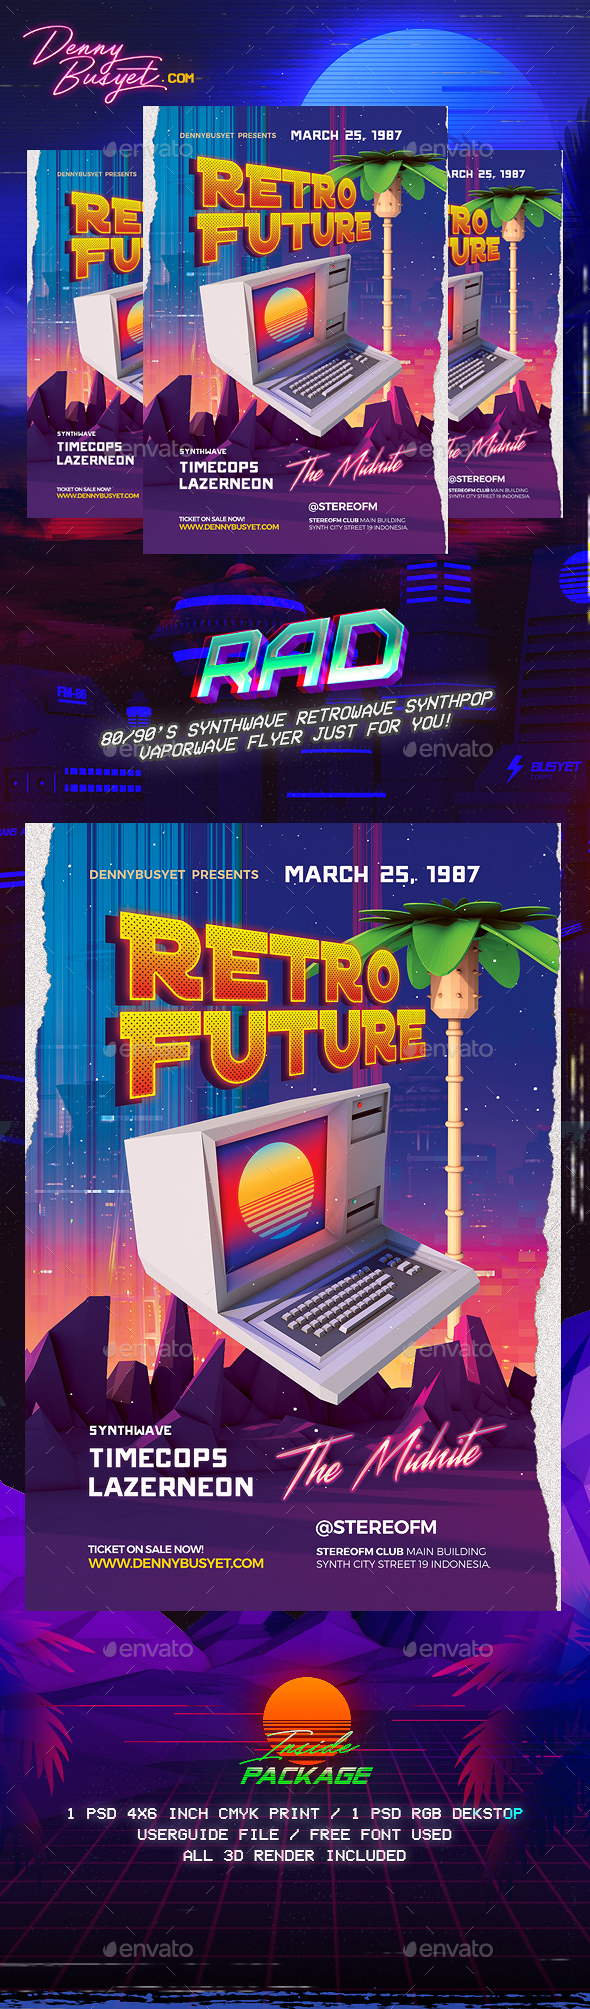 Retro Future 80's Synthwawve Flyer - Events Flyers